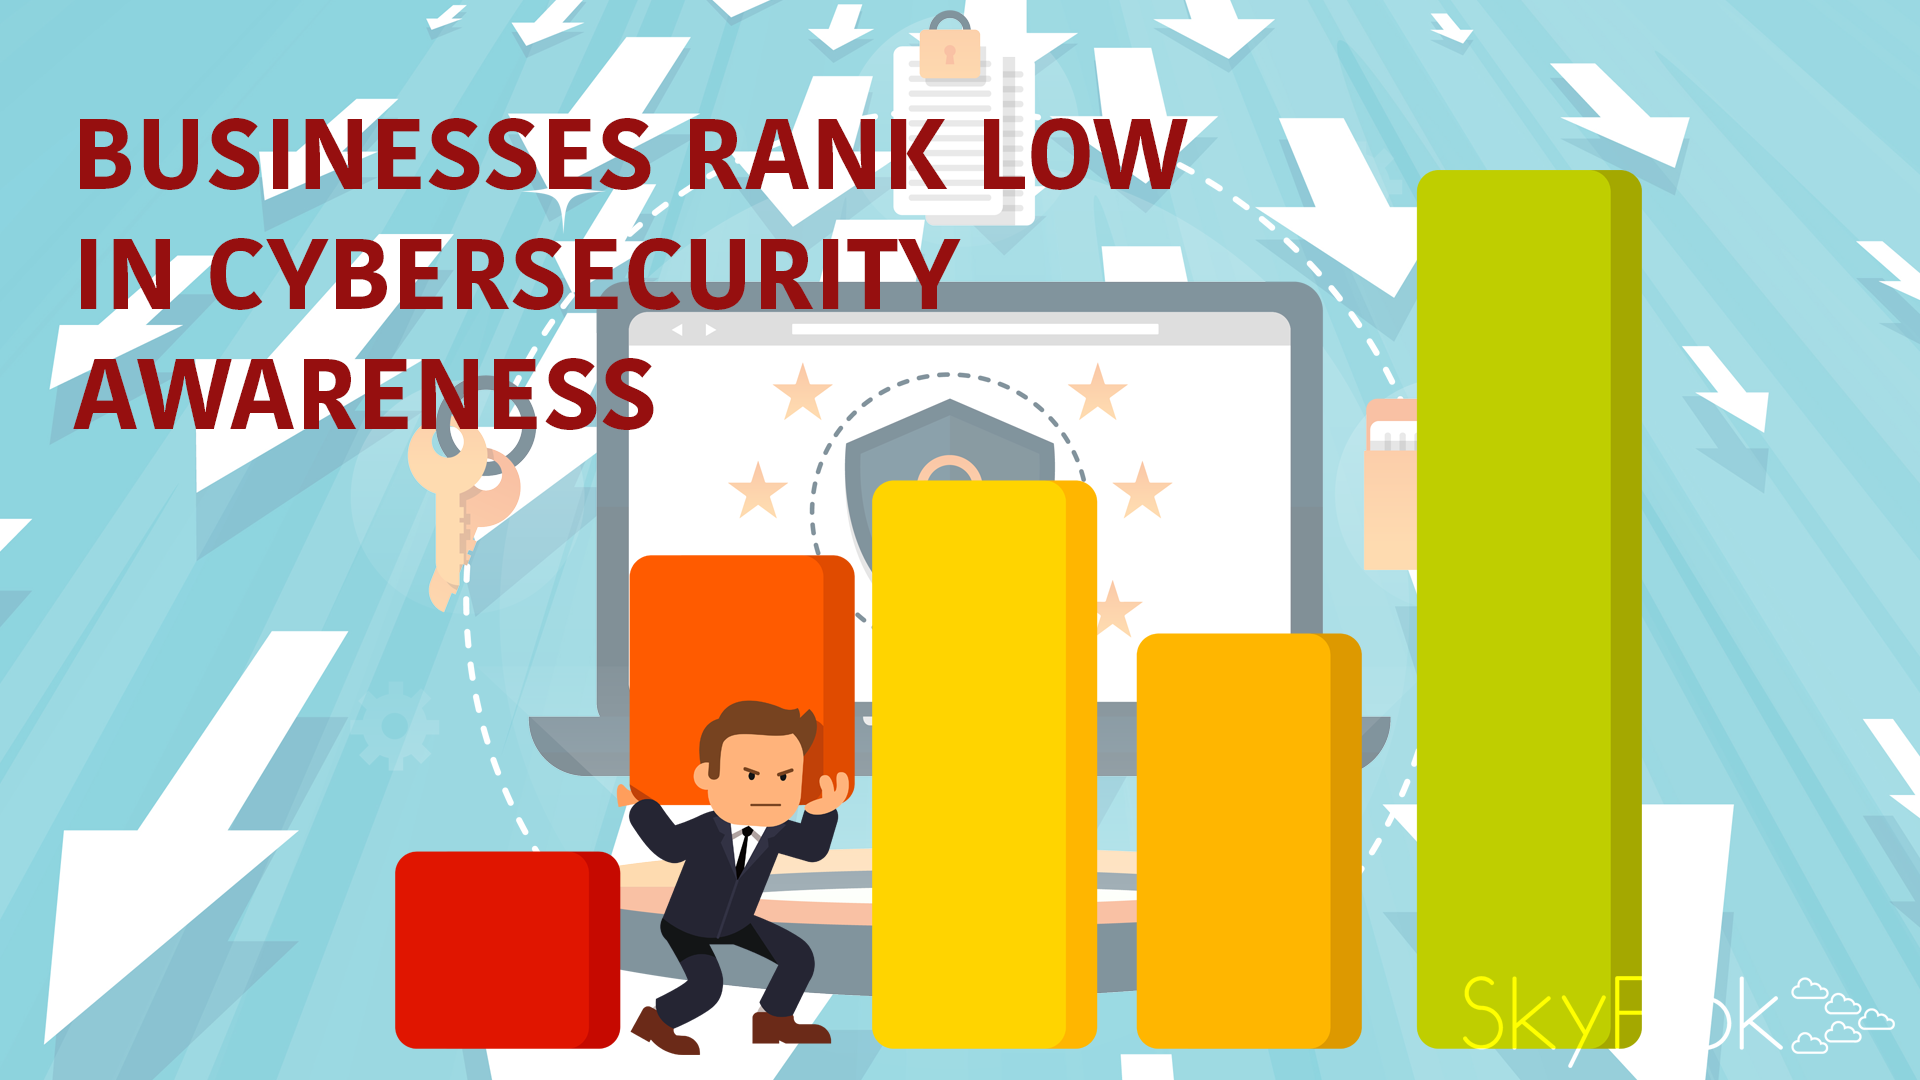 Businesses rank low in cybersecurity awareness